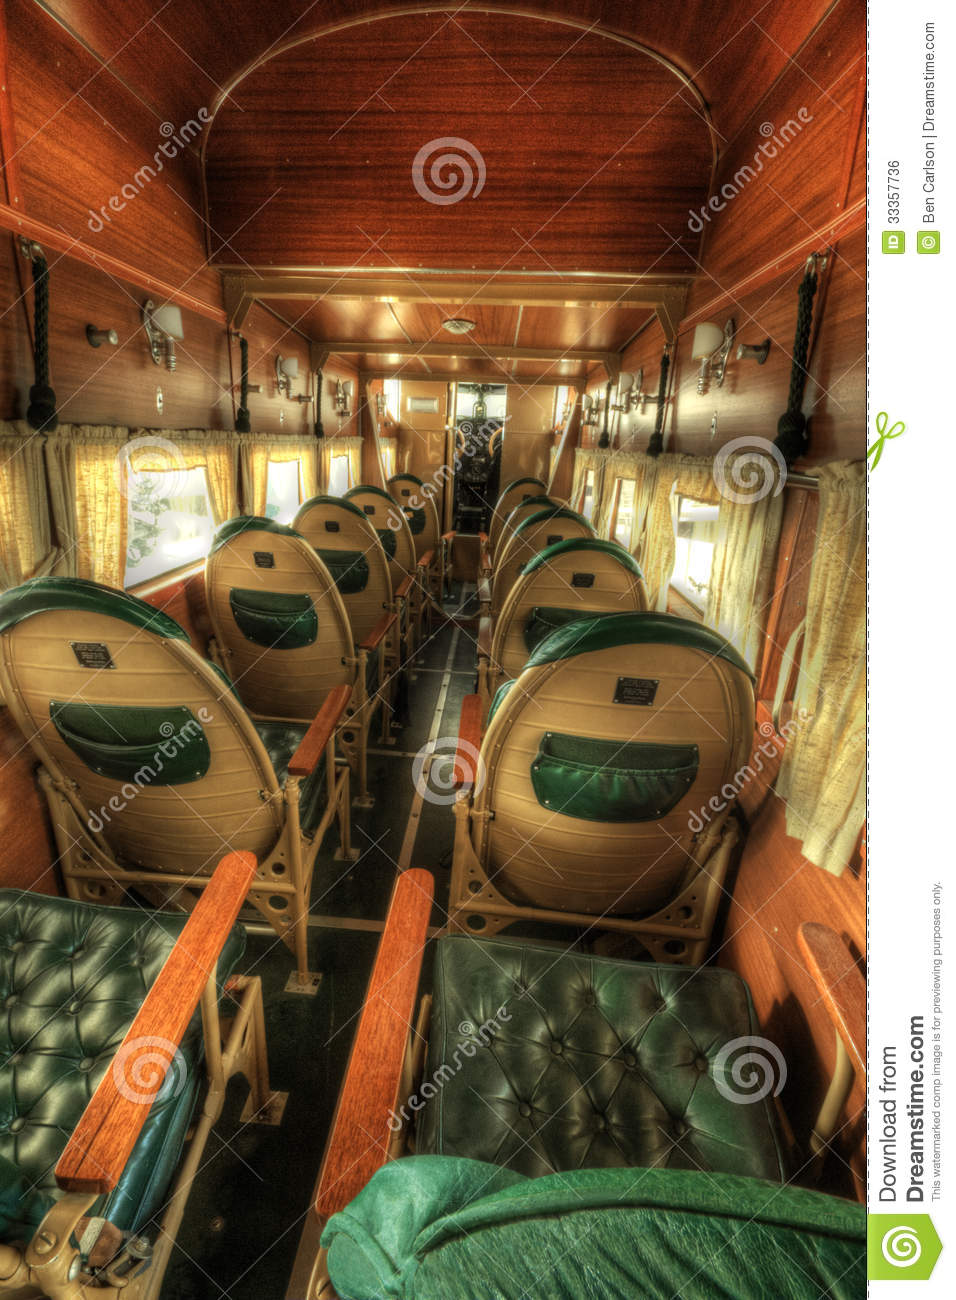 Vintage Airplane Interior stock photo Image of antique